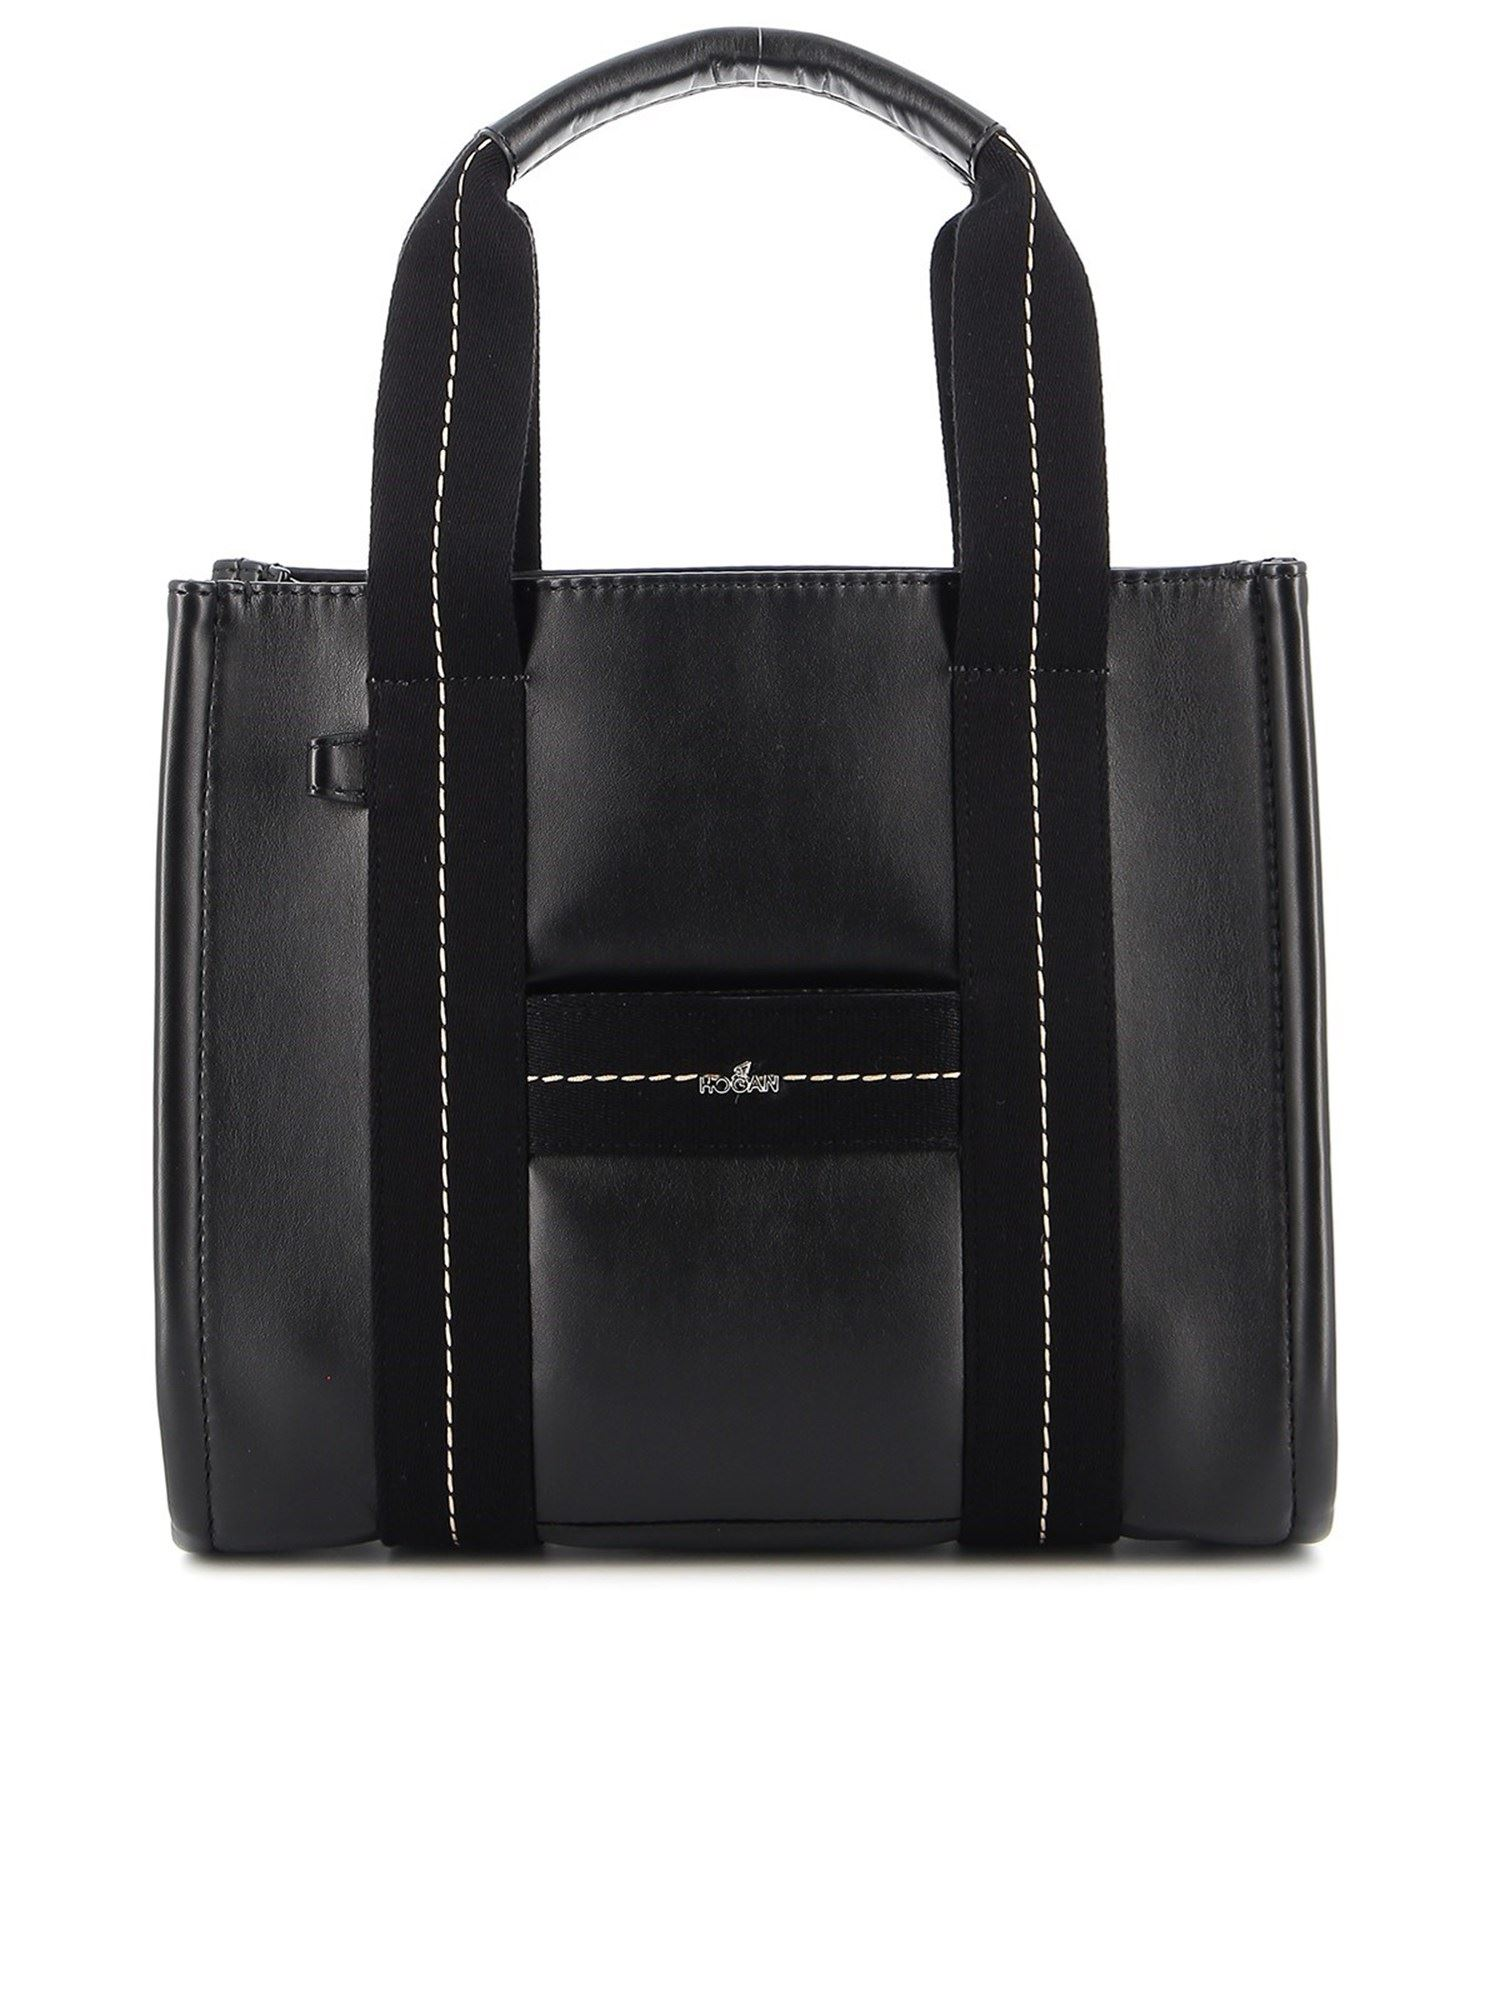 Hogan SMOOTH LEATHER TOTE BAG IN BLACK